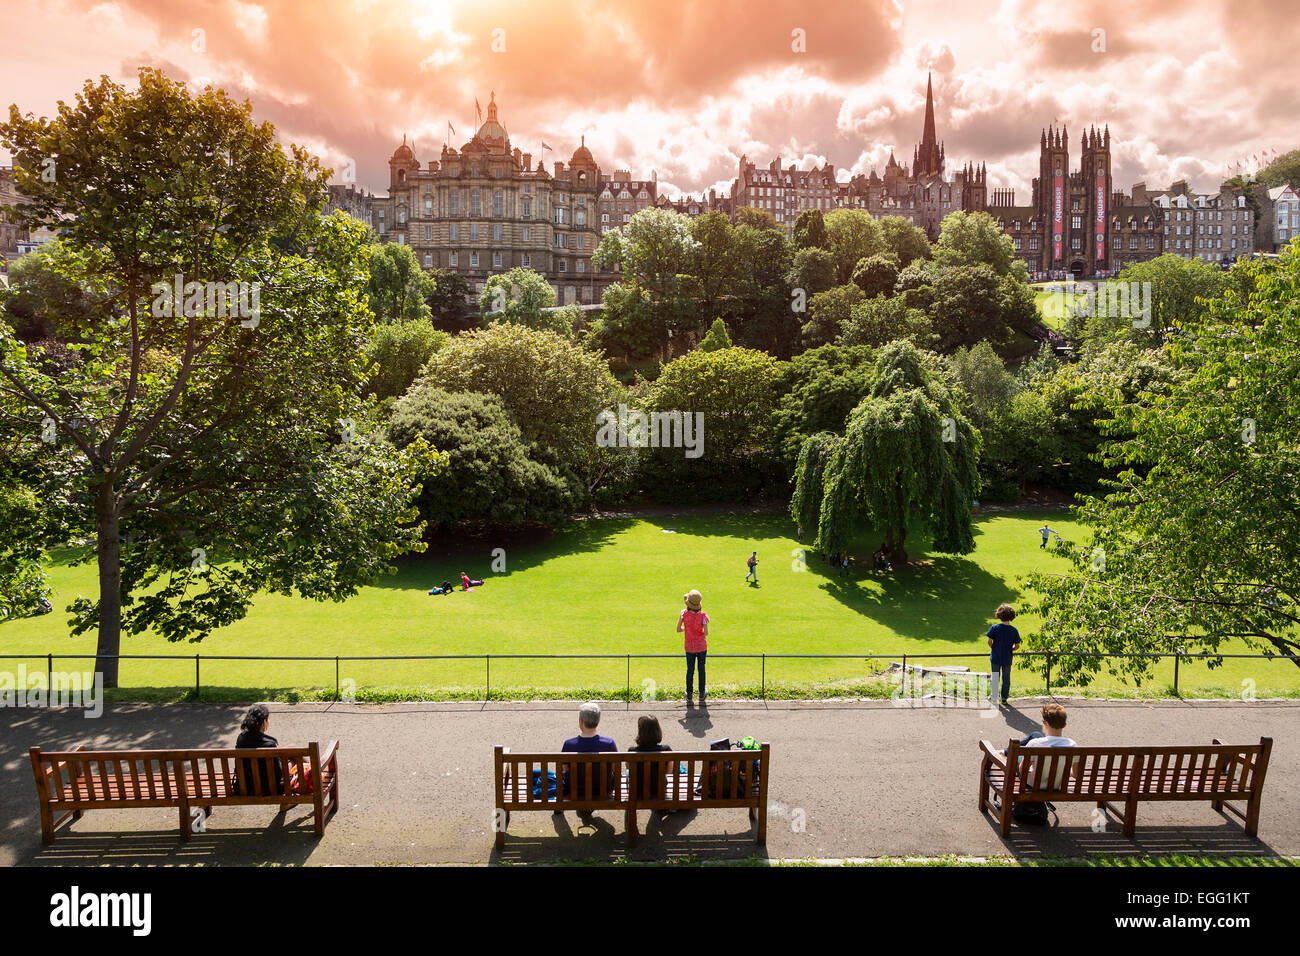 Princes Street Gardens, Edinburgh. - Stock Image